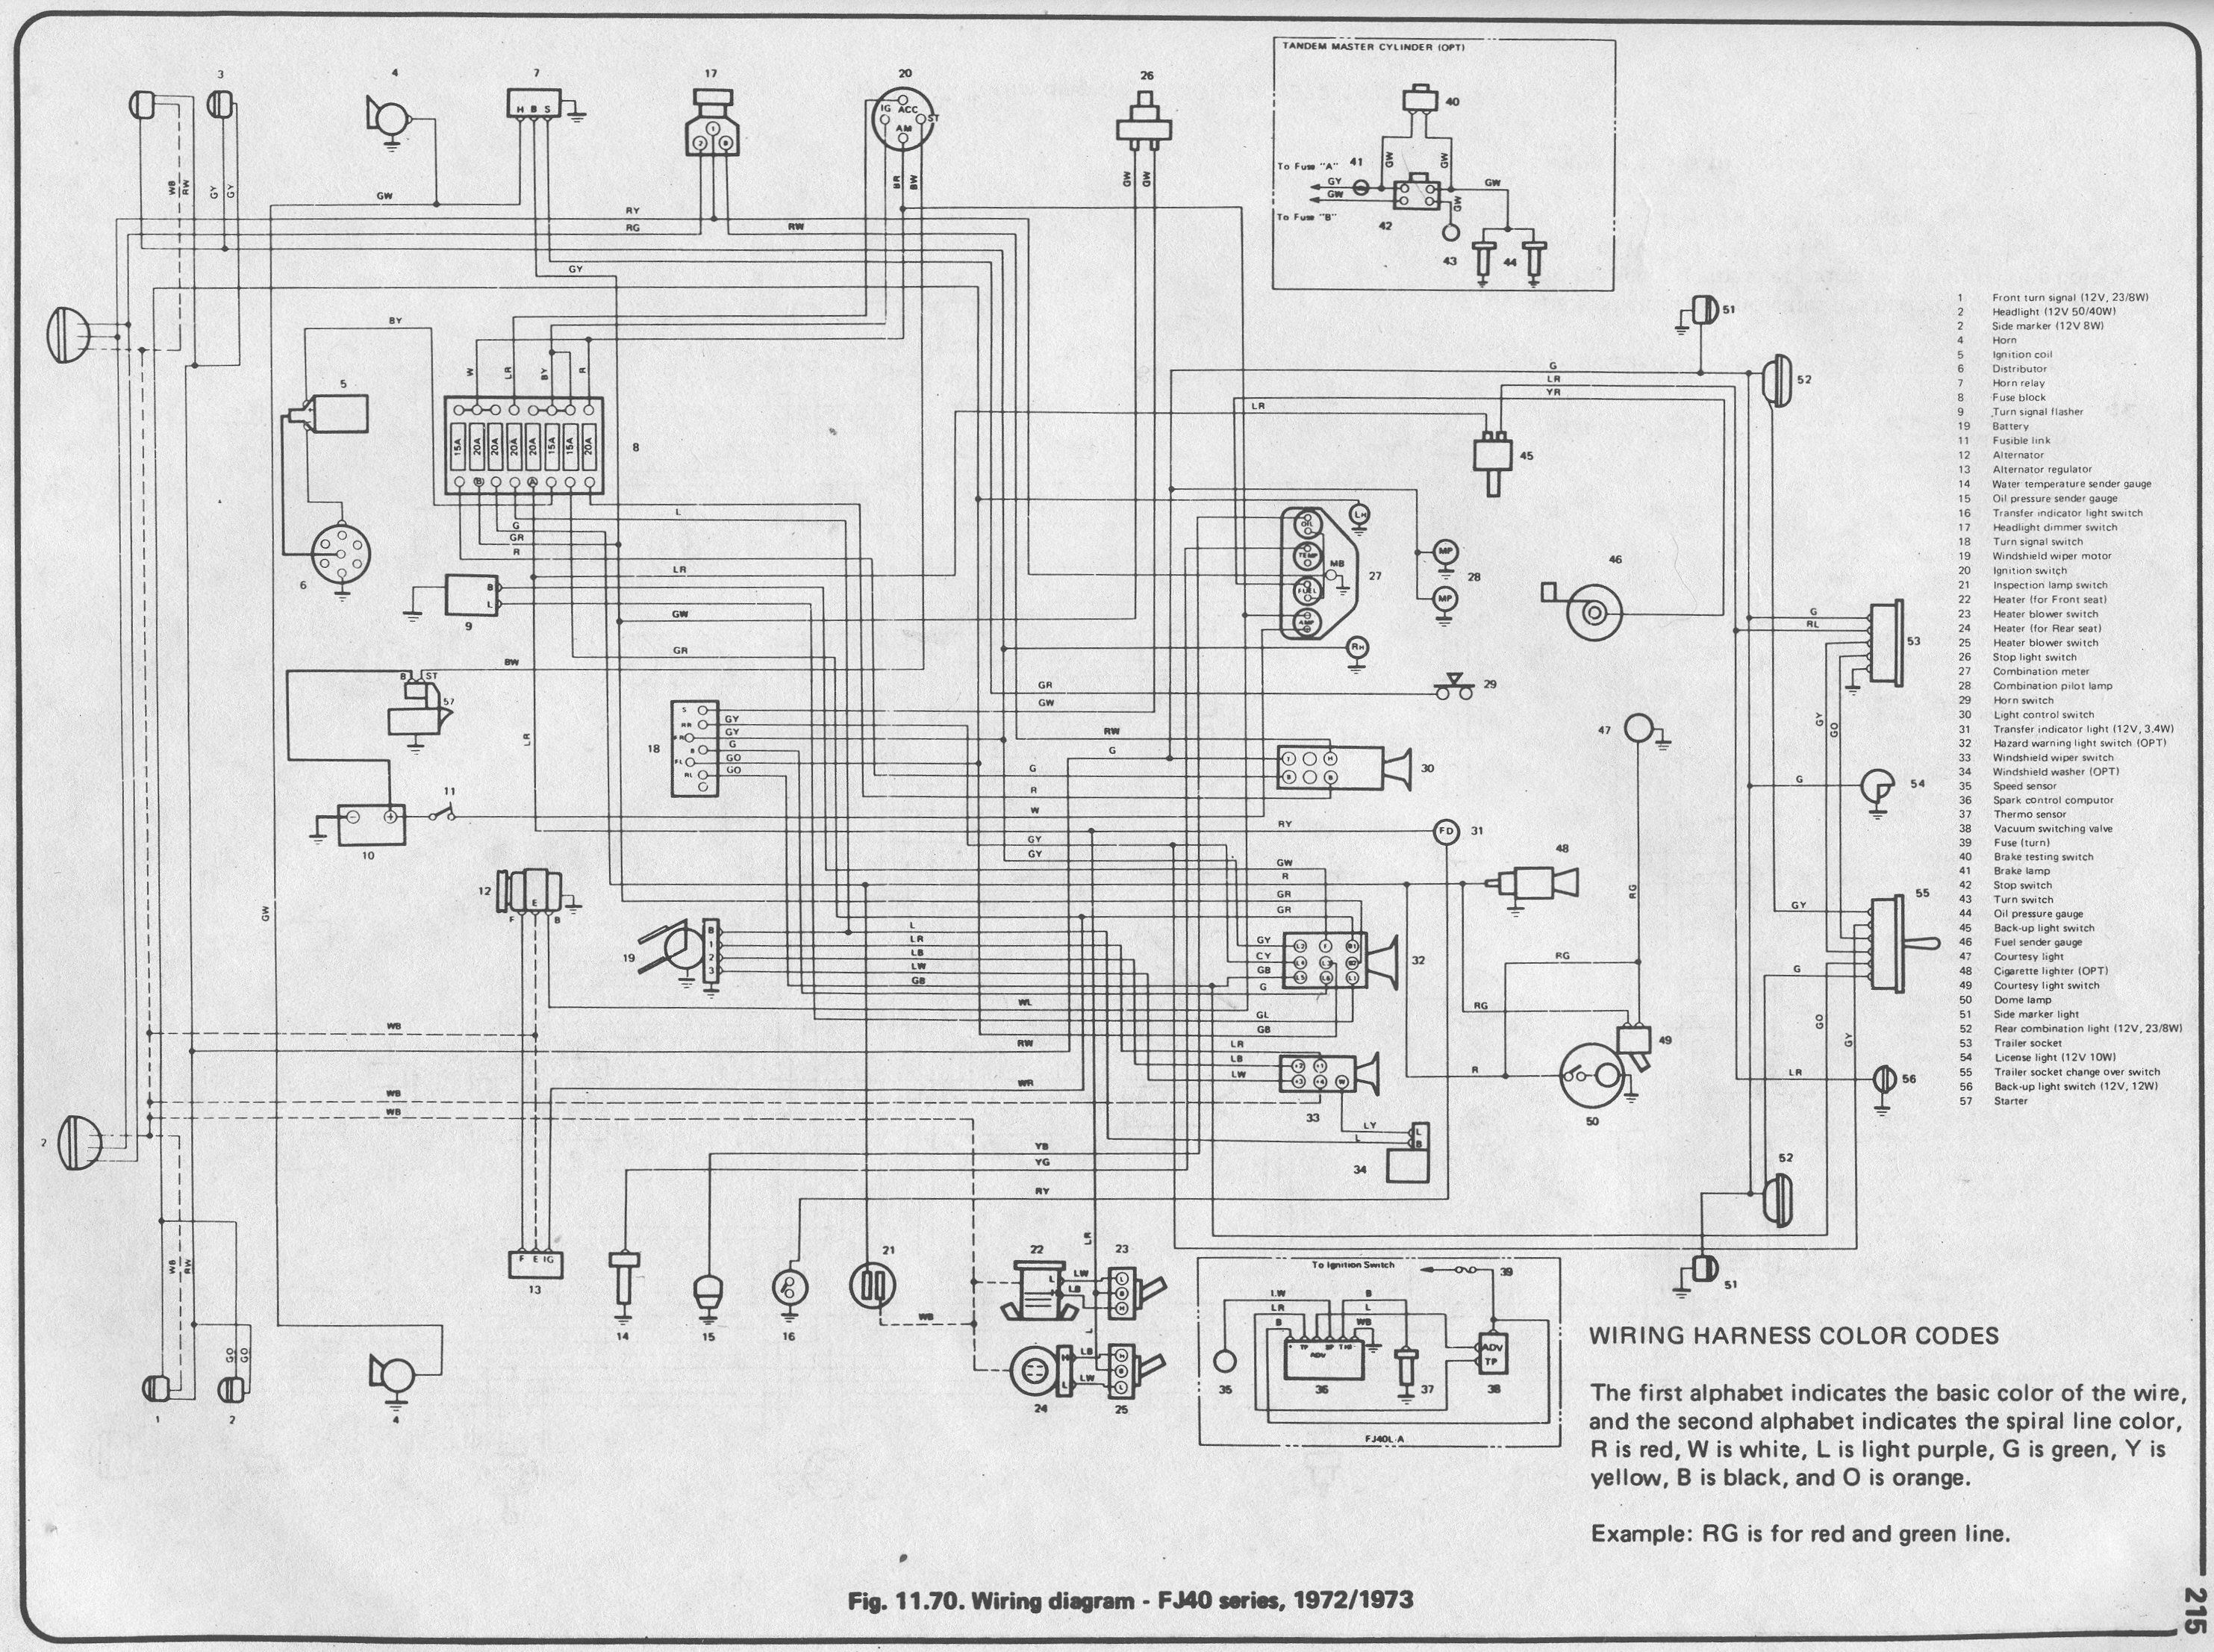 Haynes1973FJ40 fj40 wiring diagram 1973 fj40 wiring \u2022 wiring diagrams j squared co  at crackthecode.co